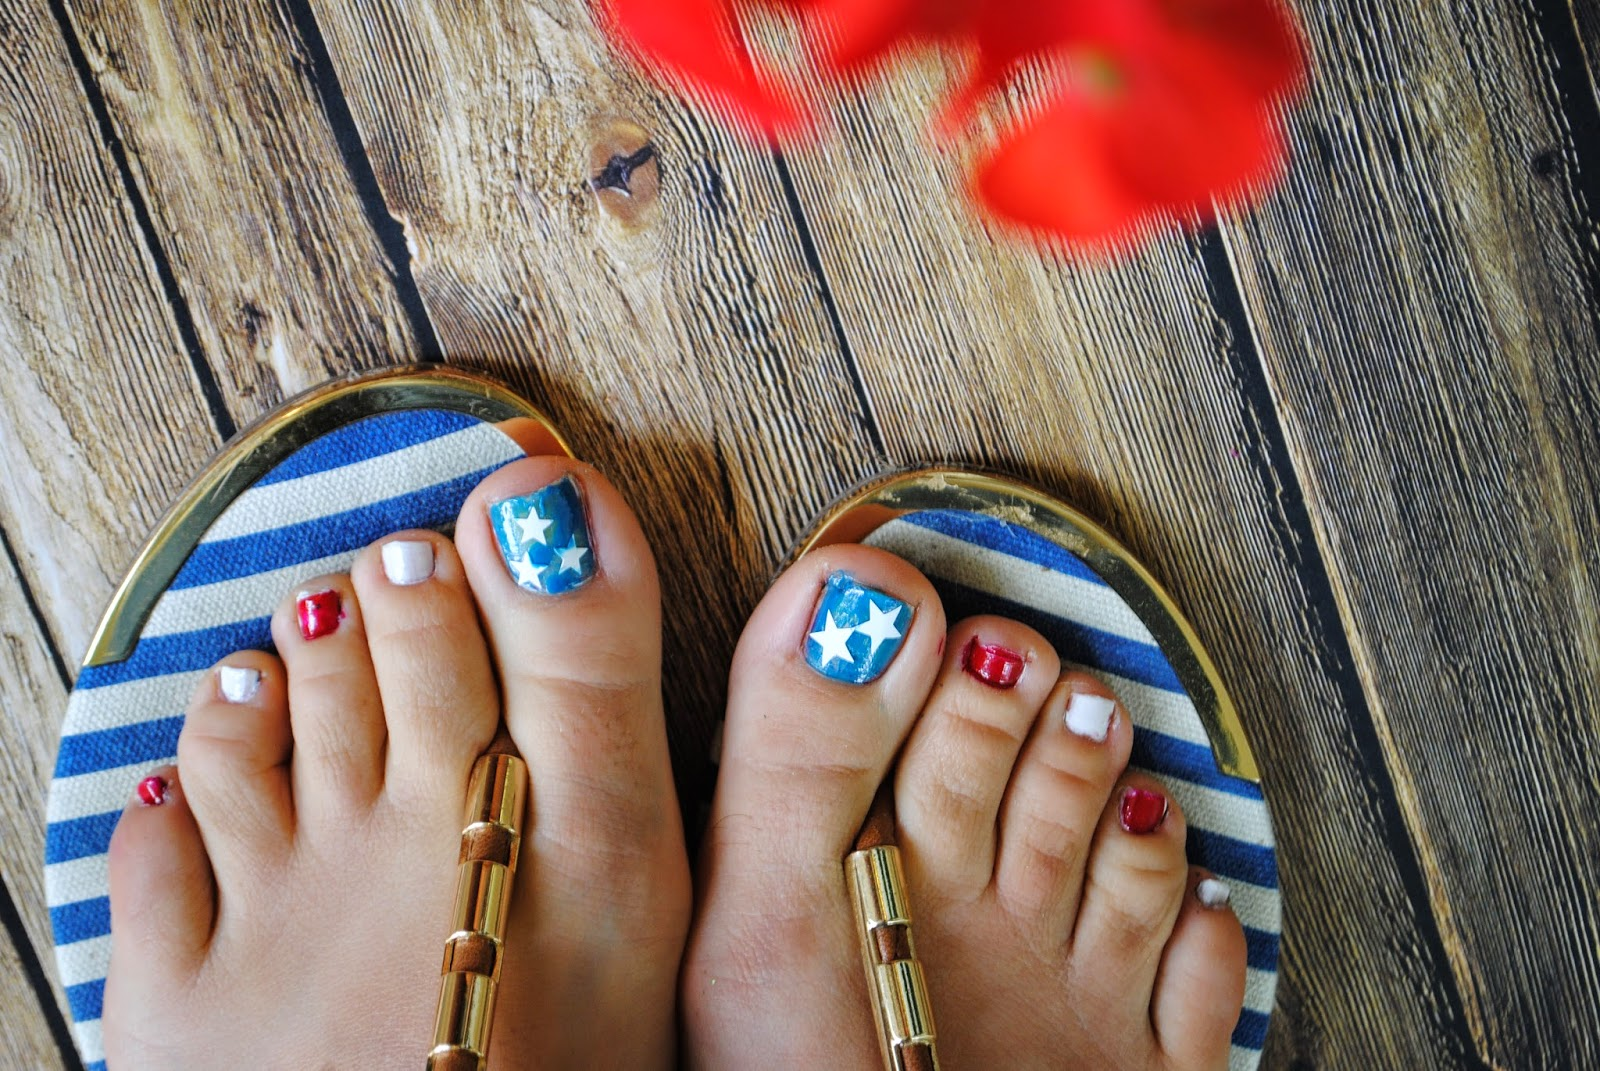 patriotic july 4 toenails nail art red white blue silhouette cameo vinyl decals